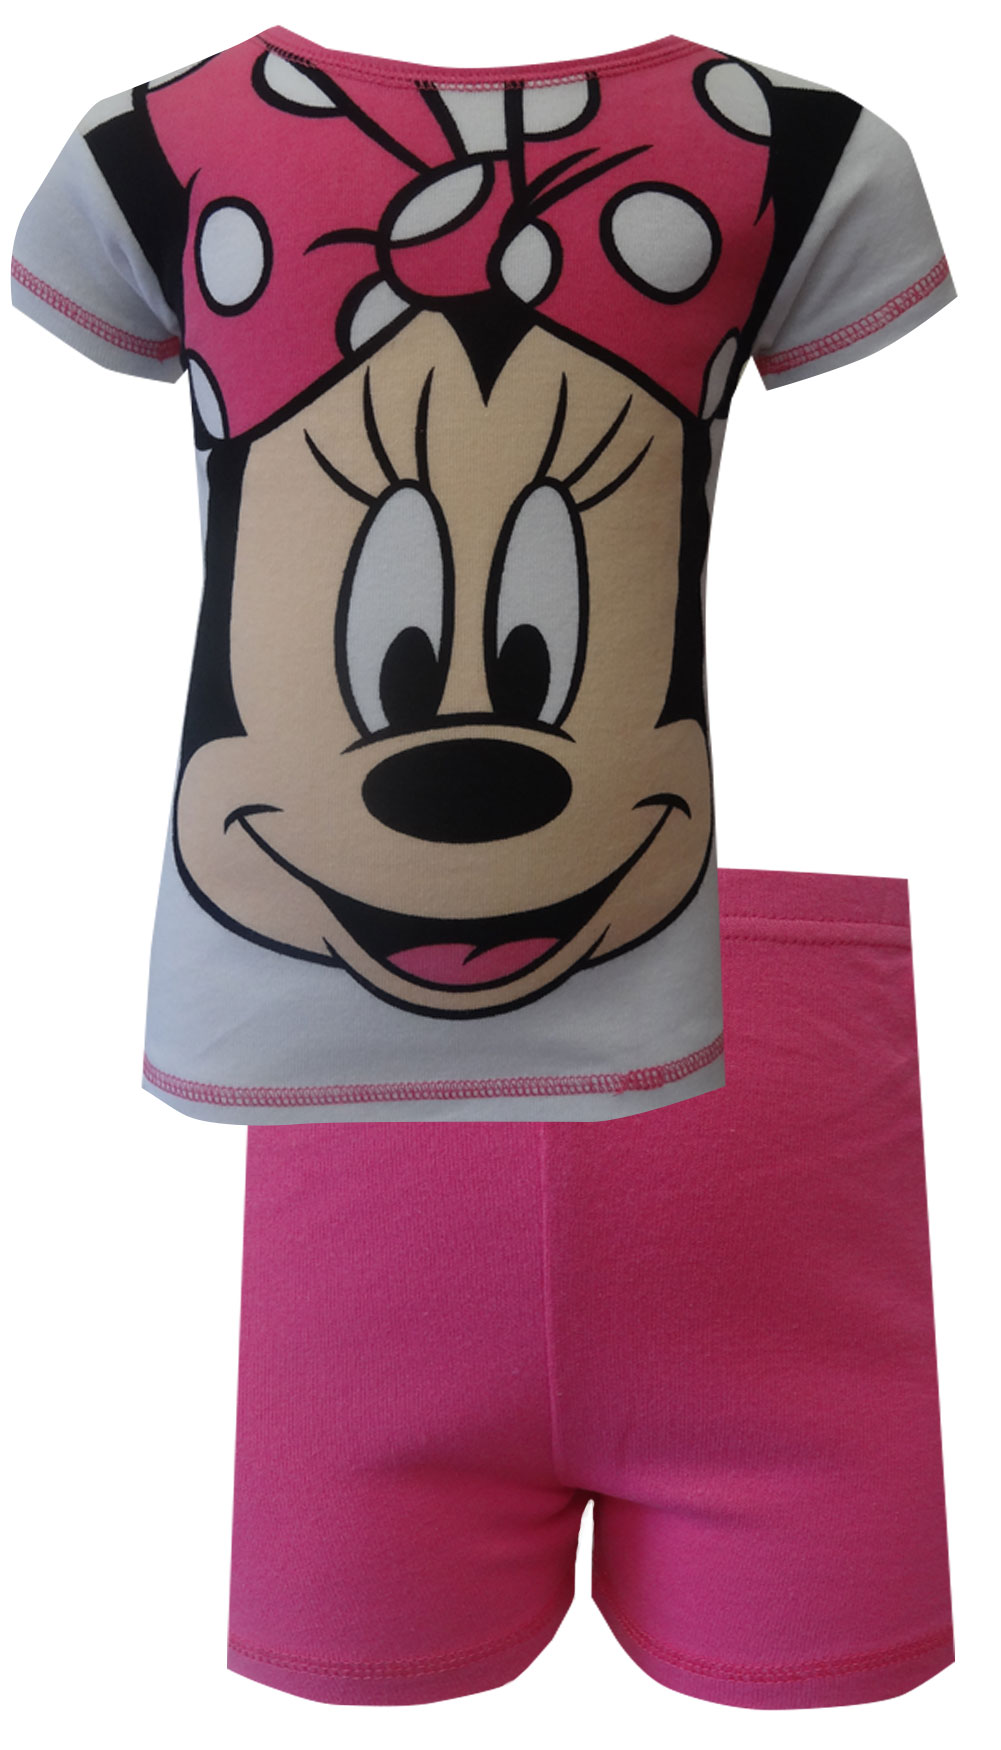 Image of Disney's Minnie Mouse Pink Cotton Shortie Pajama for girls